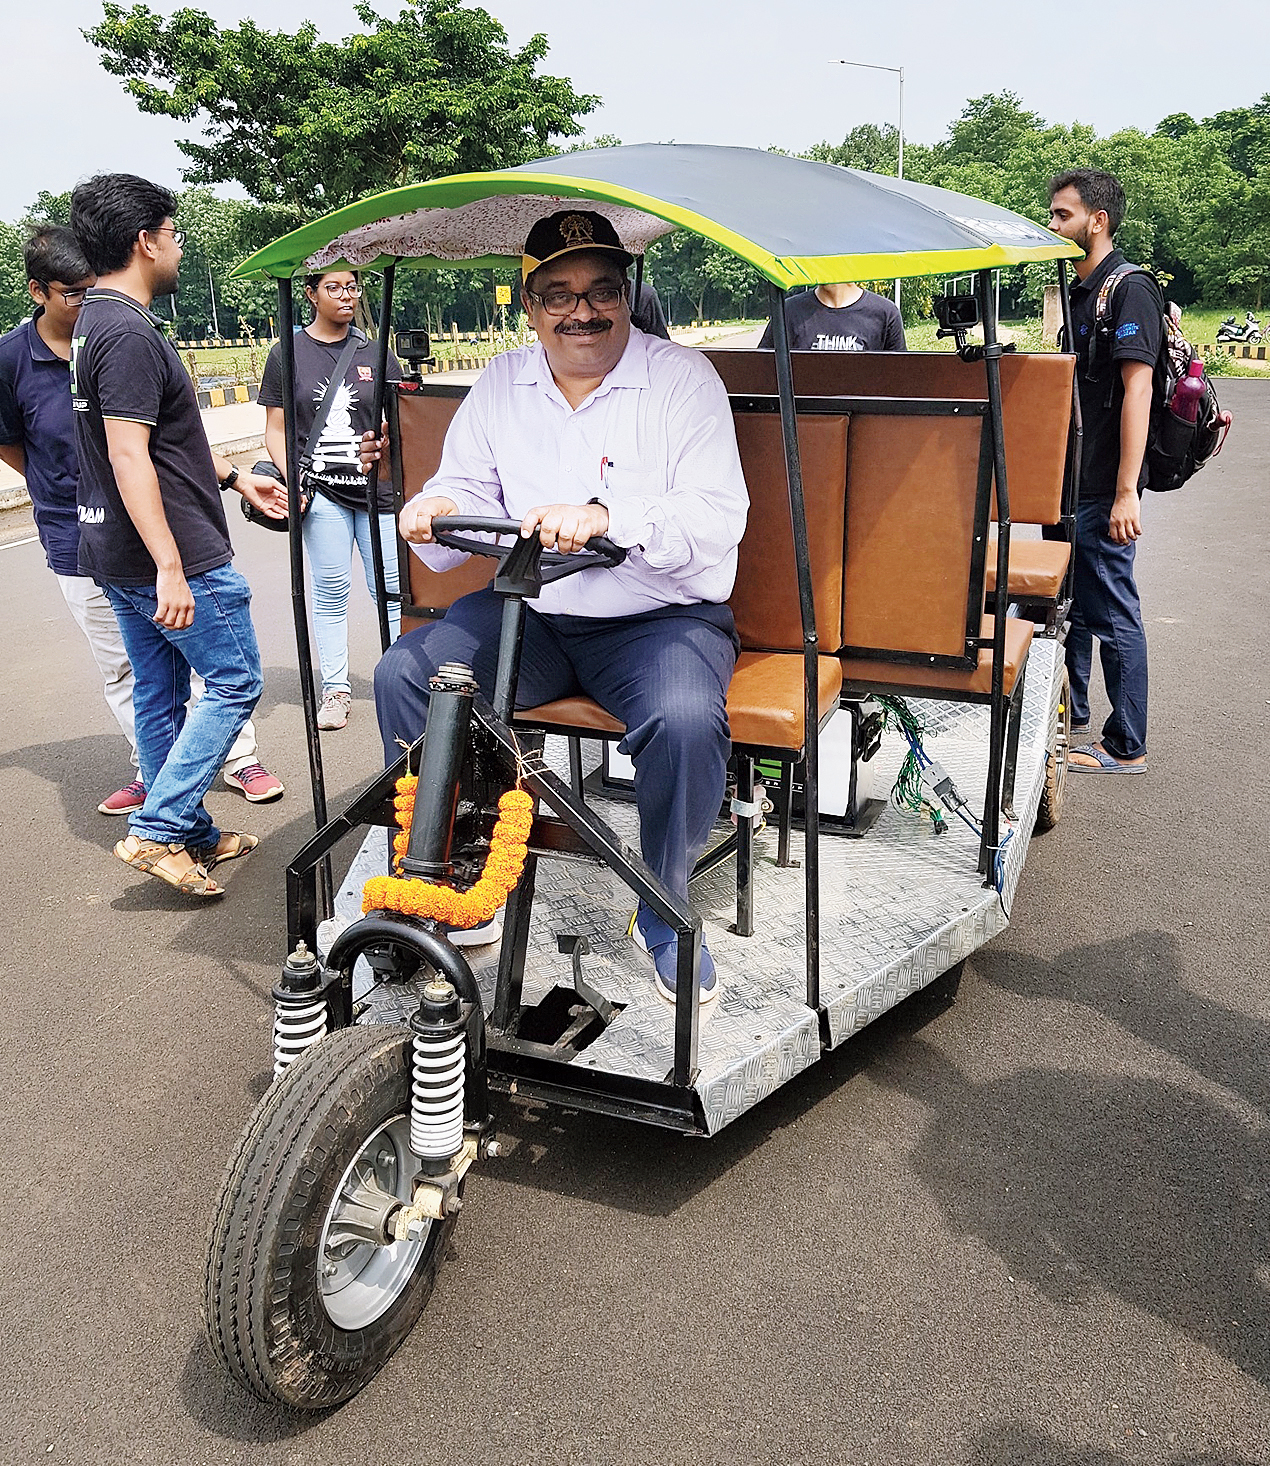 Partha Pratim Chakraborty, former director of IIT Kharagpur, on the e-rickshaw on the campus.